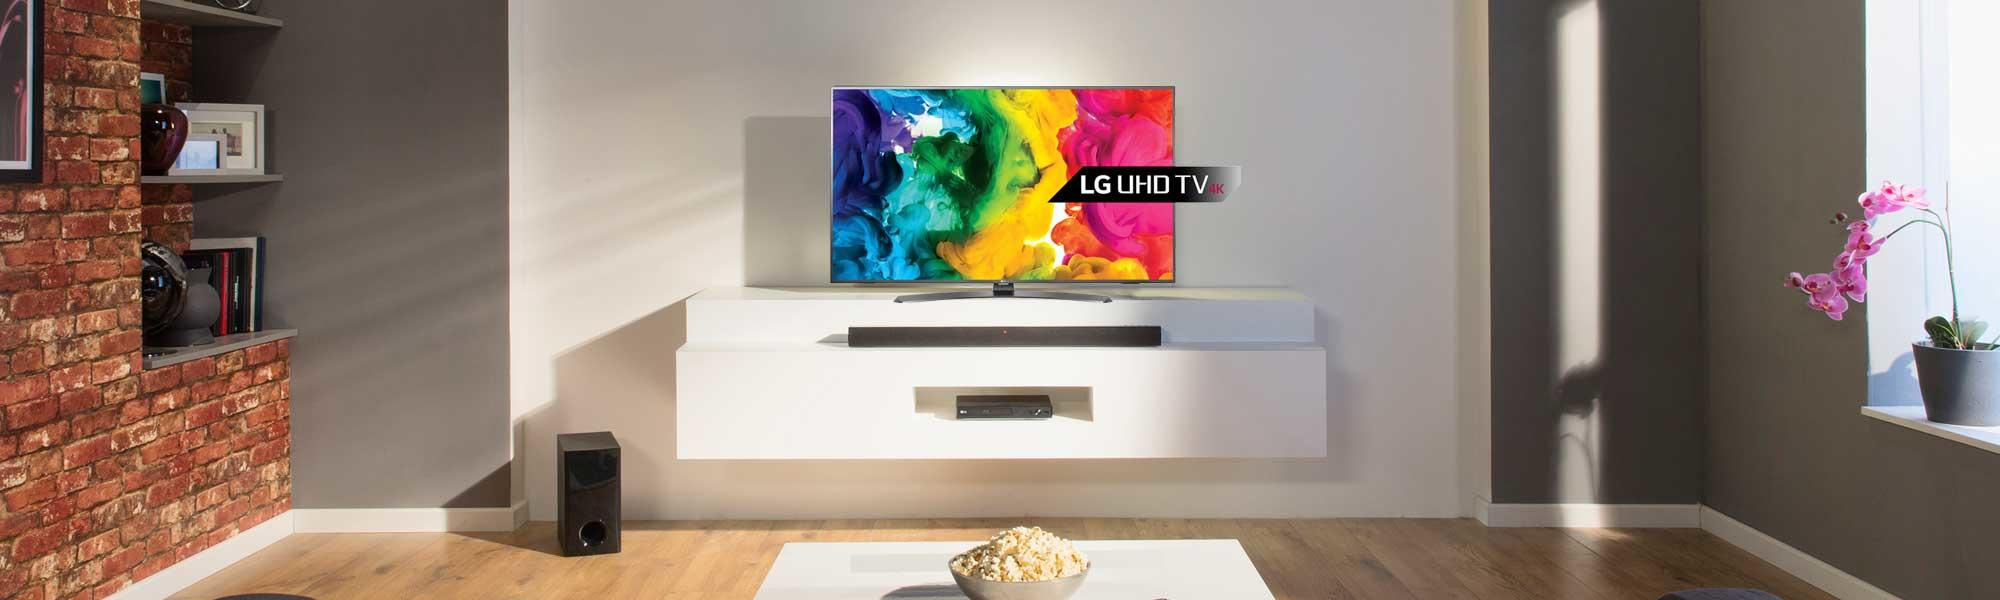 "LG 65UH661V 65"" 4K HDR Ultra HD LED TV"